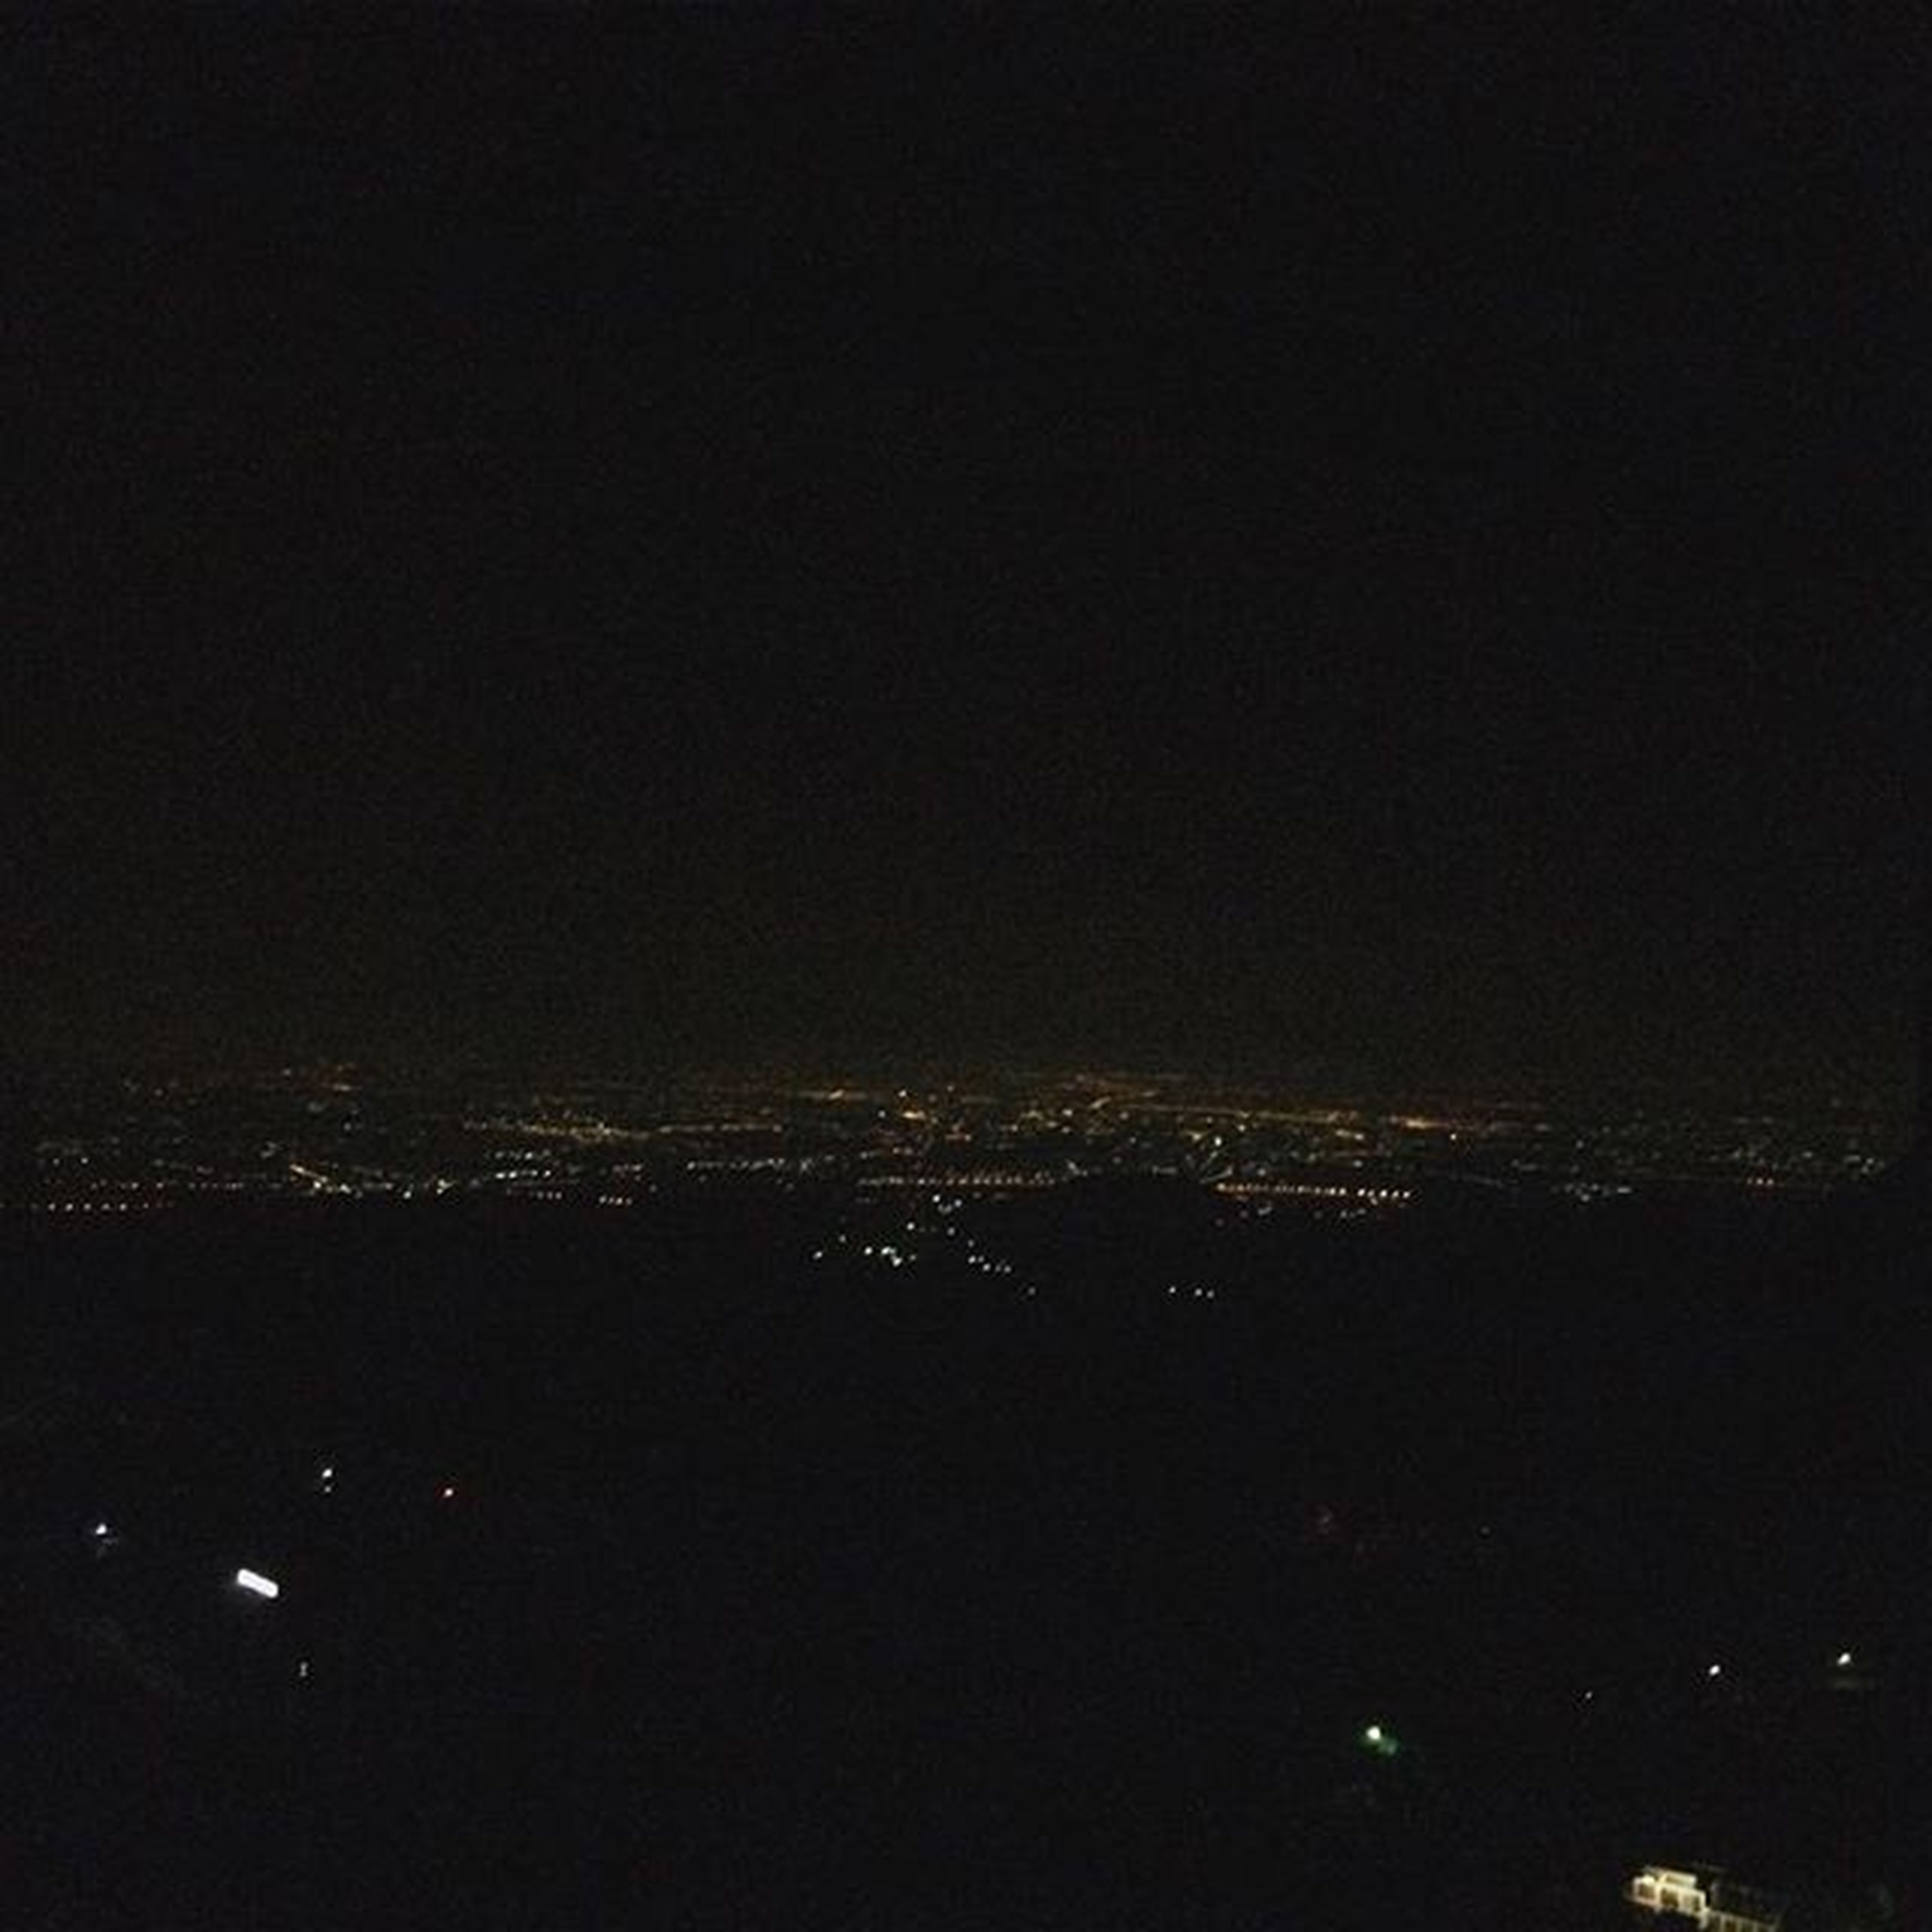 night, illuminated, cityscape, city, dark, copy space, building exterior, architecture, built structure, crowded, high angle view, clear sky, sky, aerial view, no people, outdoors, residential district, silhouette, city life, scenics